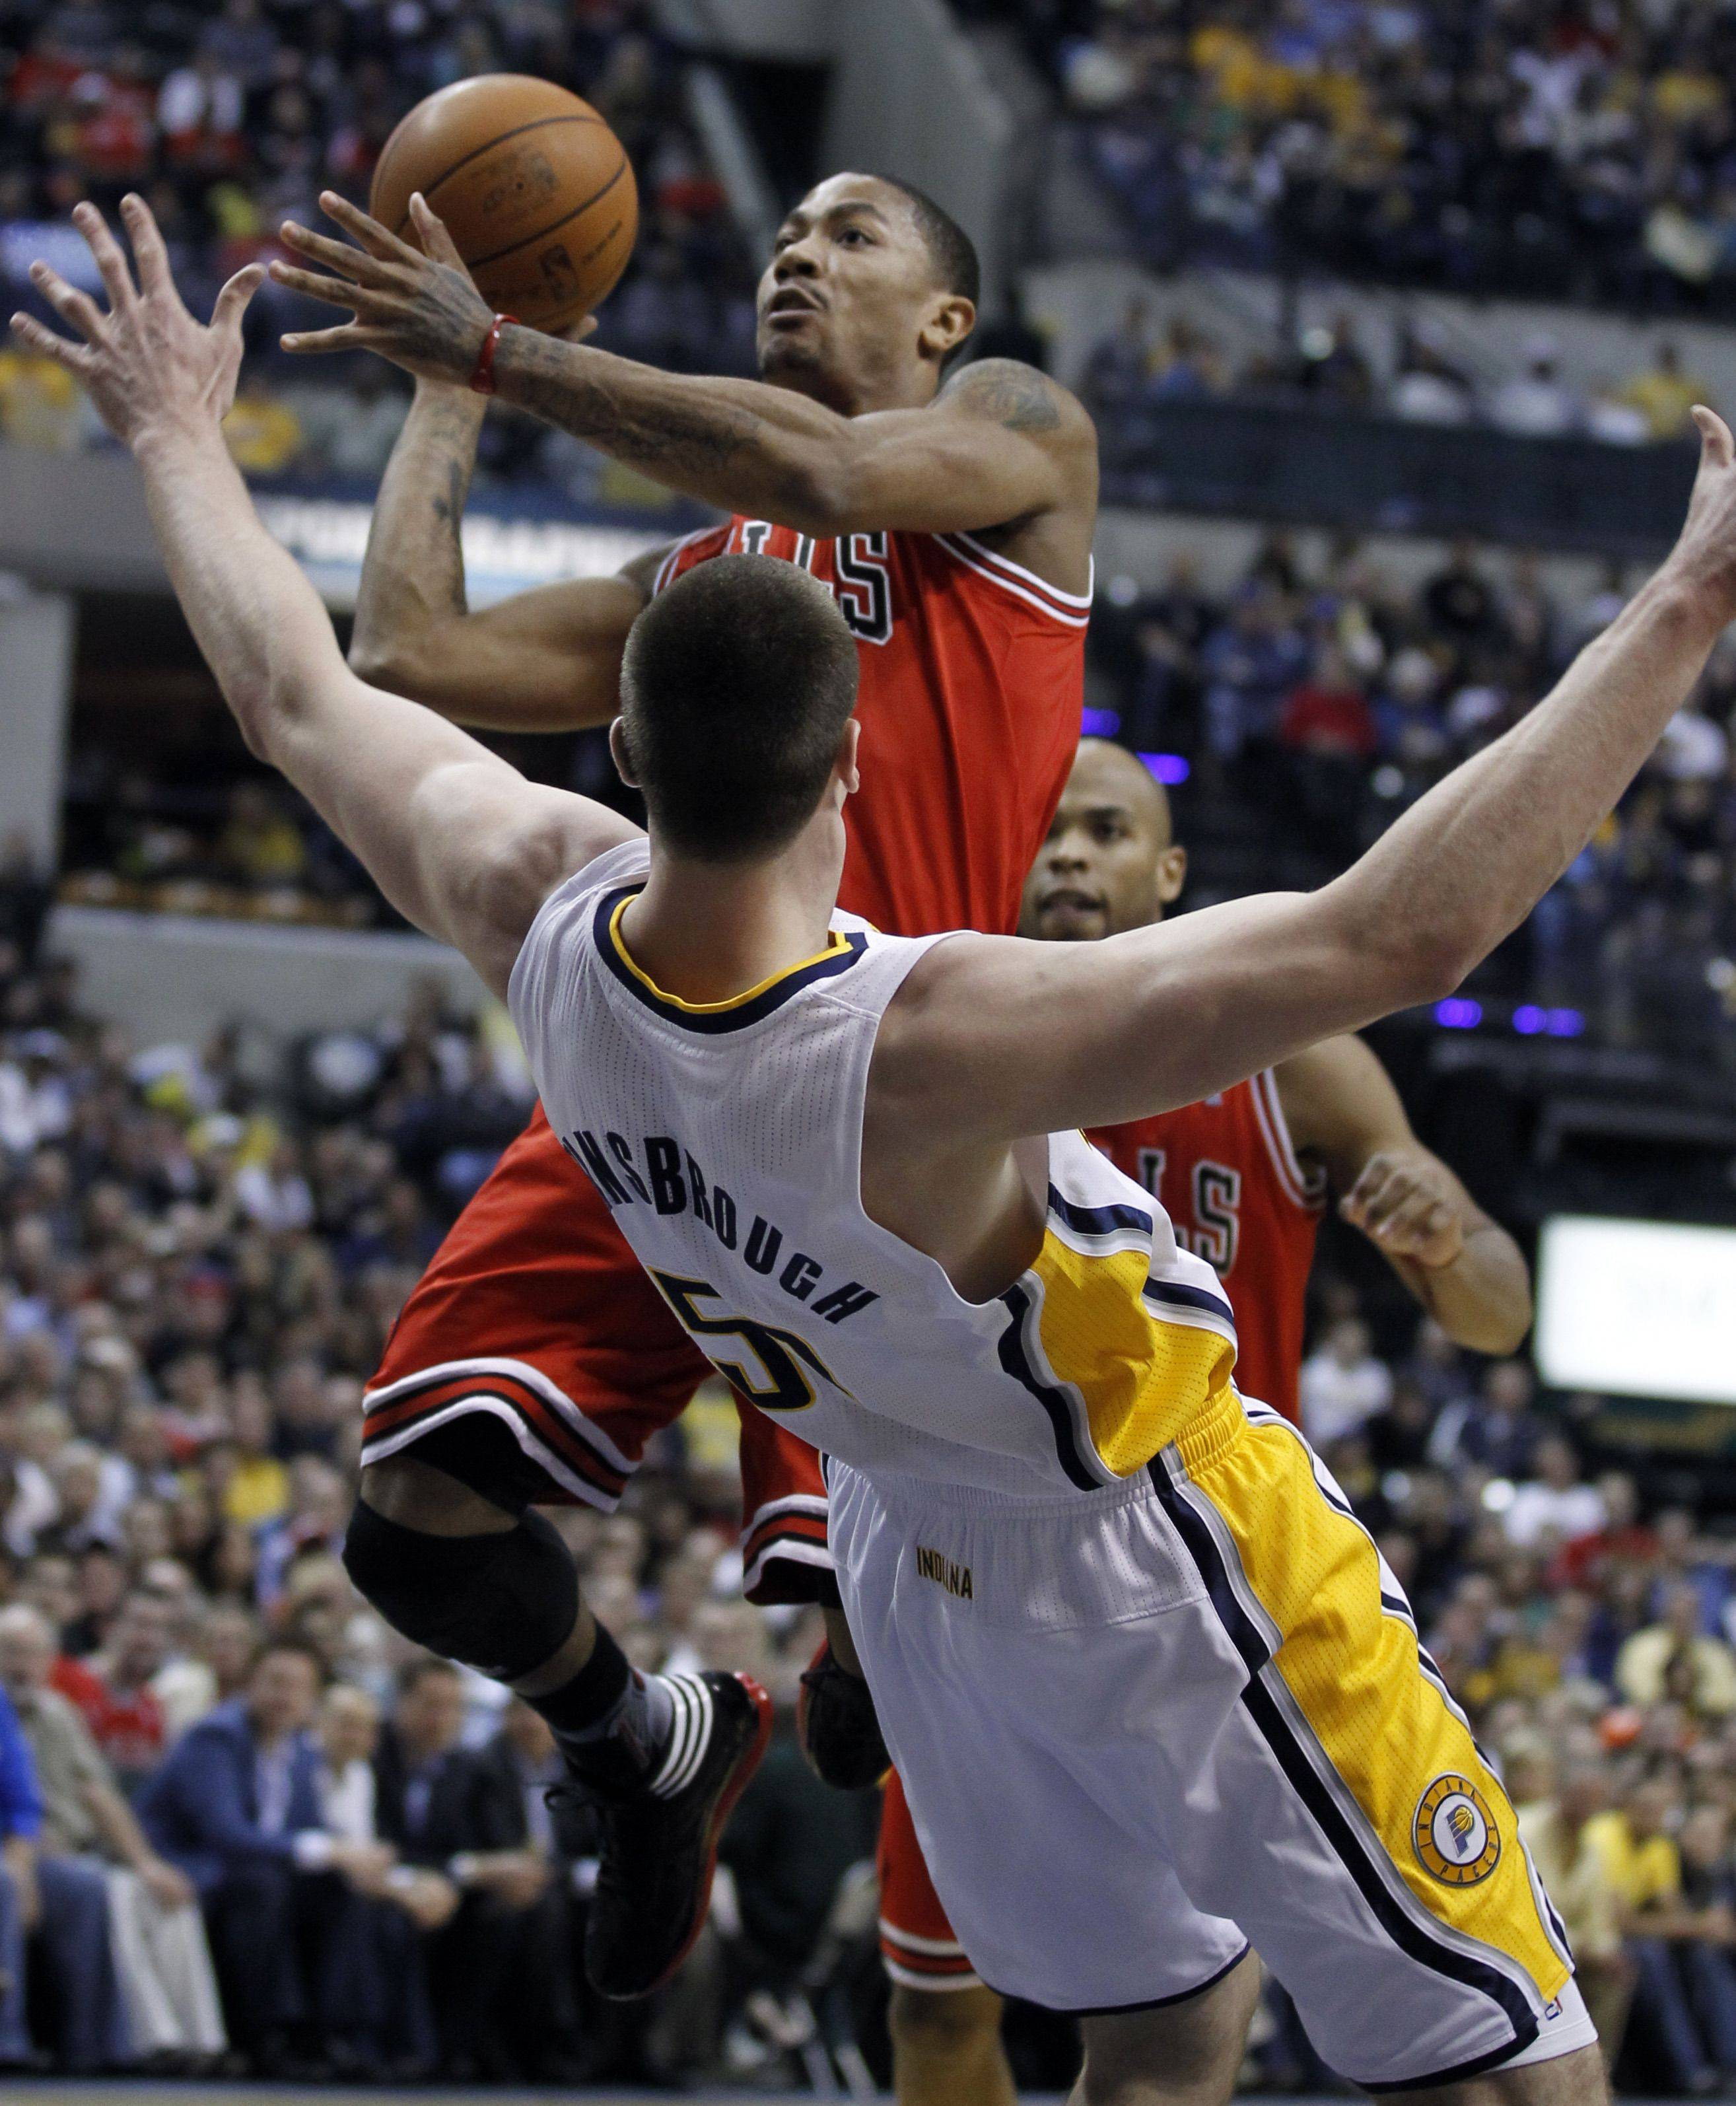 Indiana Pacers' Tyler Hansbrough (50) tries to draw a charging foul as Chicago Bulls' Derrick Rose drives to the basket during the first half.